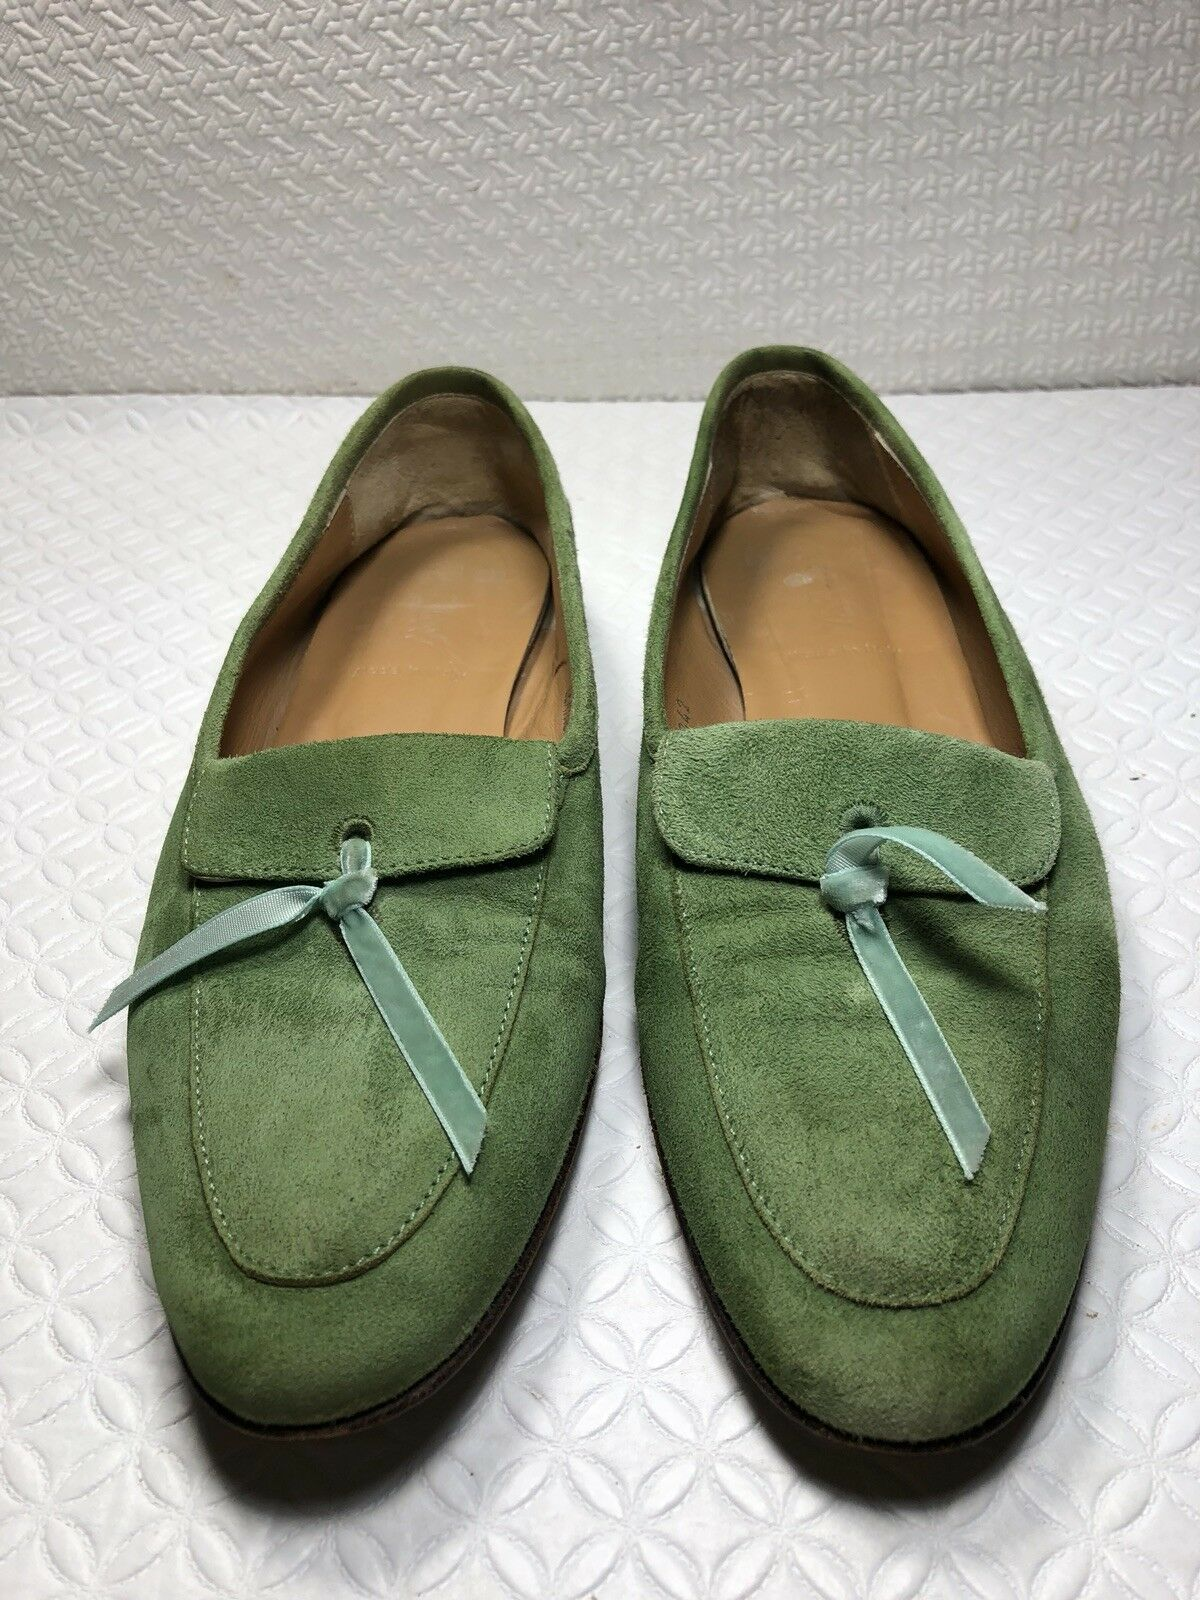 J Crew Women's Green Leather Ballet Flats Made In  Size-7